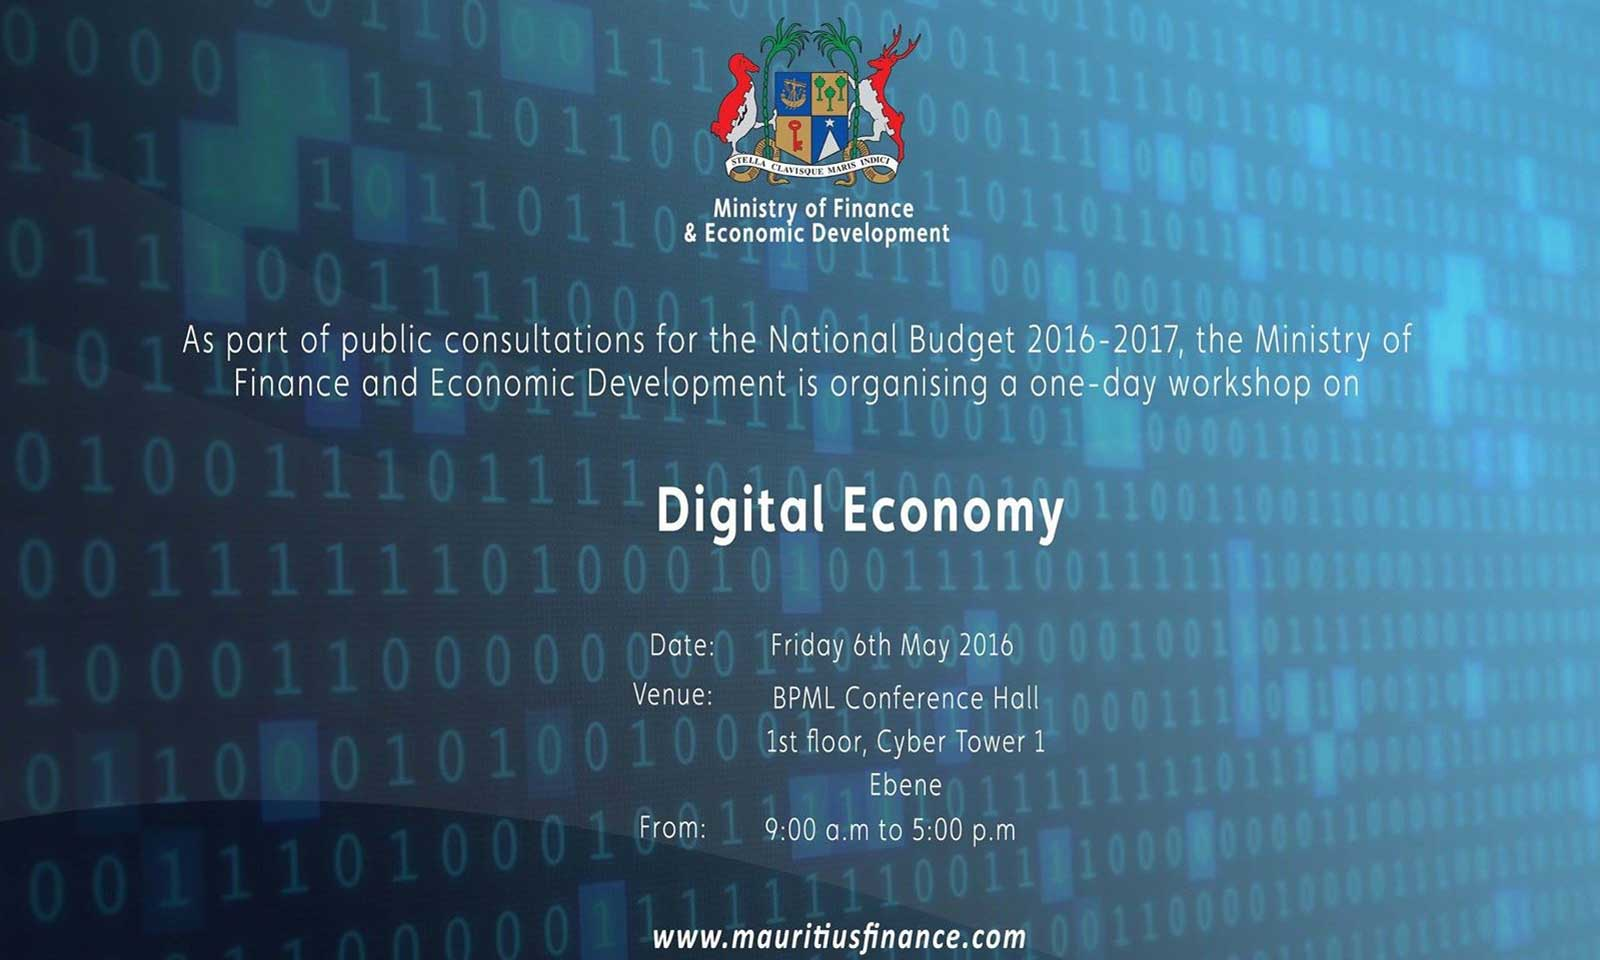 Digital Economy Workshop